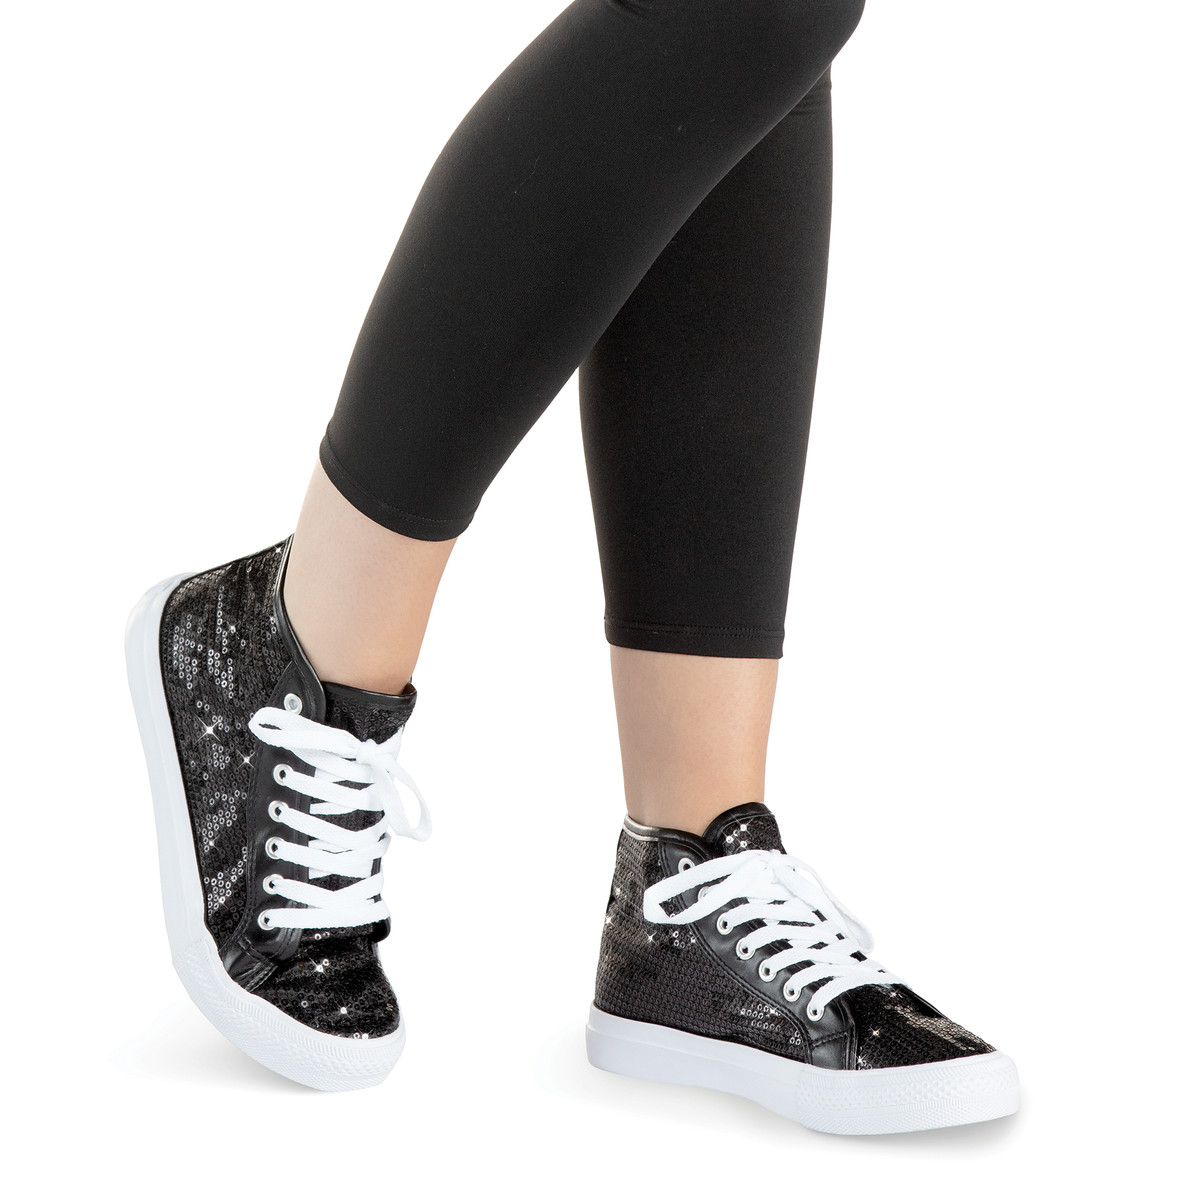 Sparkle High Top Sneaker Sizing Kit